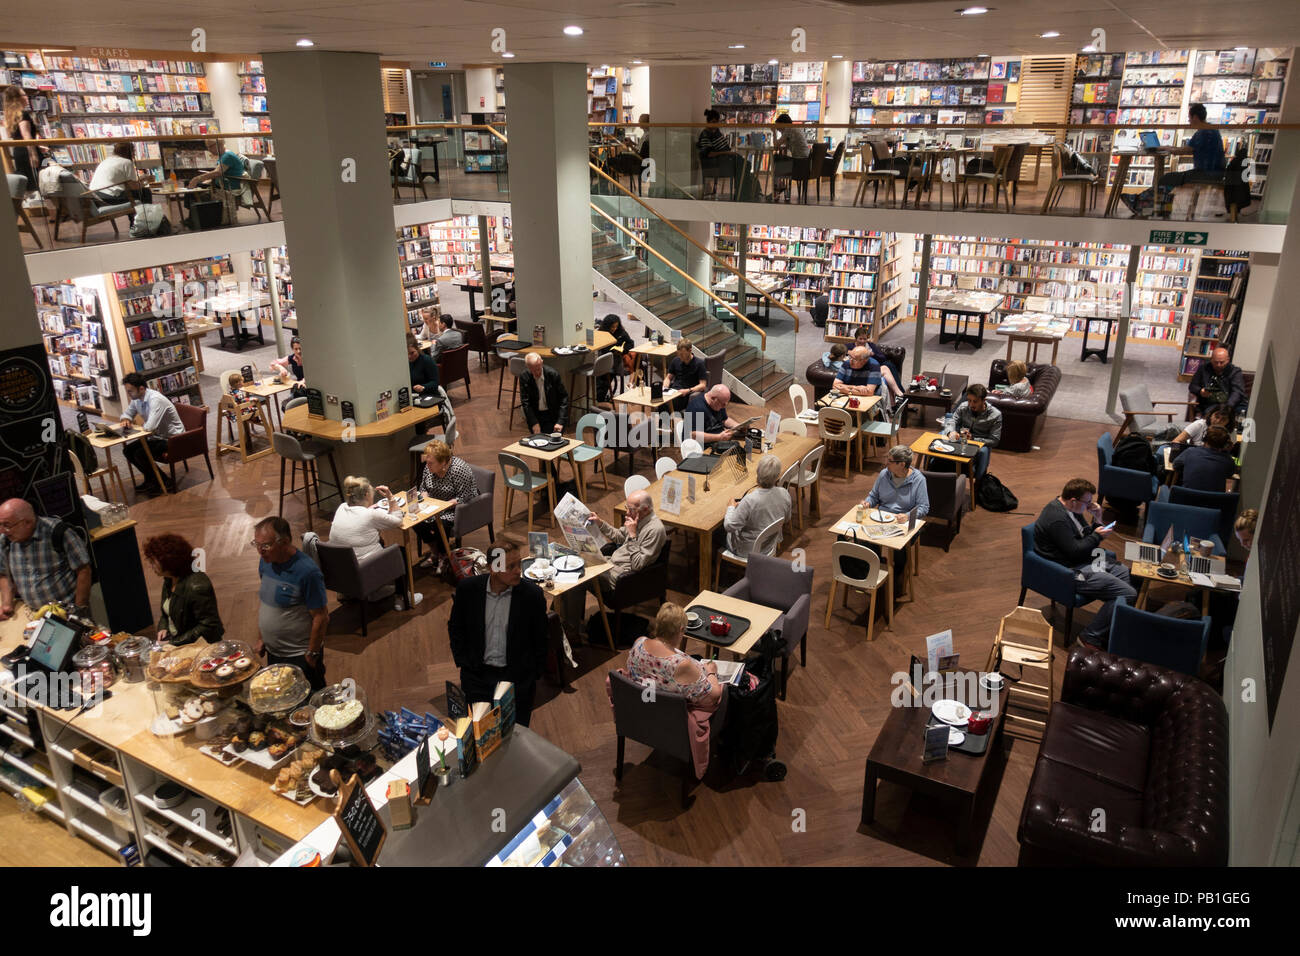 Interior of Costa Coffee inside Waterstones bookshop on Sauchiehall Street, Glasgow, UK - Stock Image